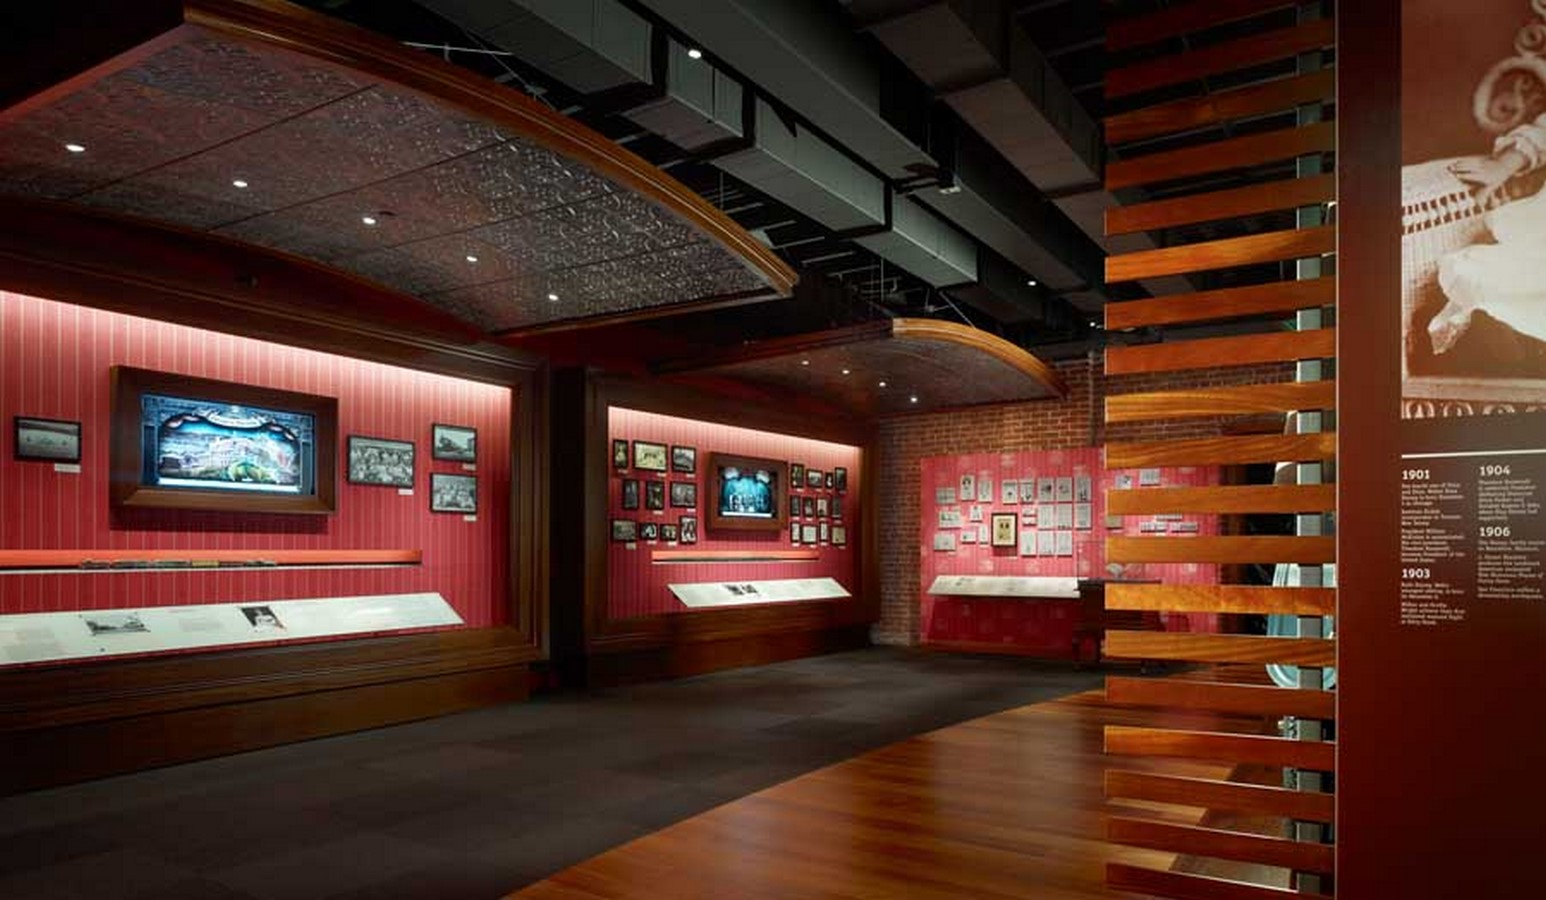 Walt Disney Family Museum by Rockwell Group- Telling a story through architecture - Sheet32